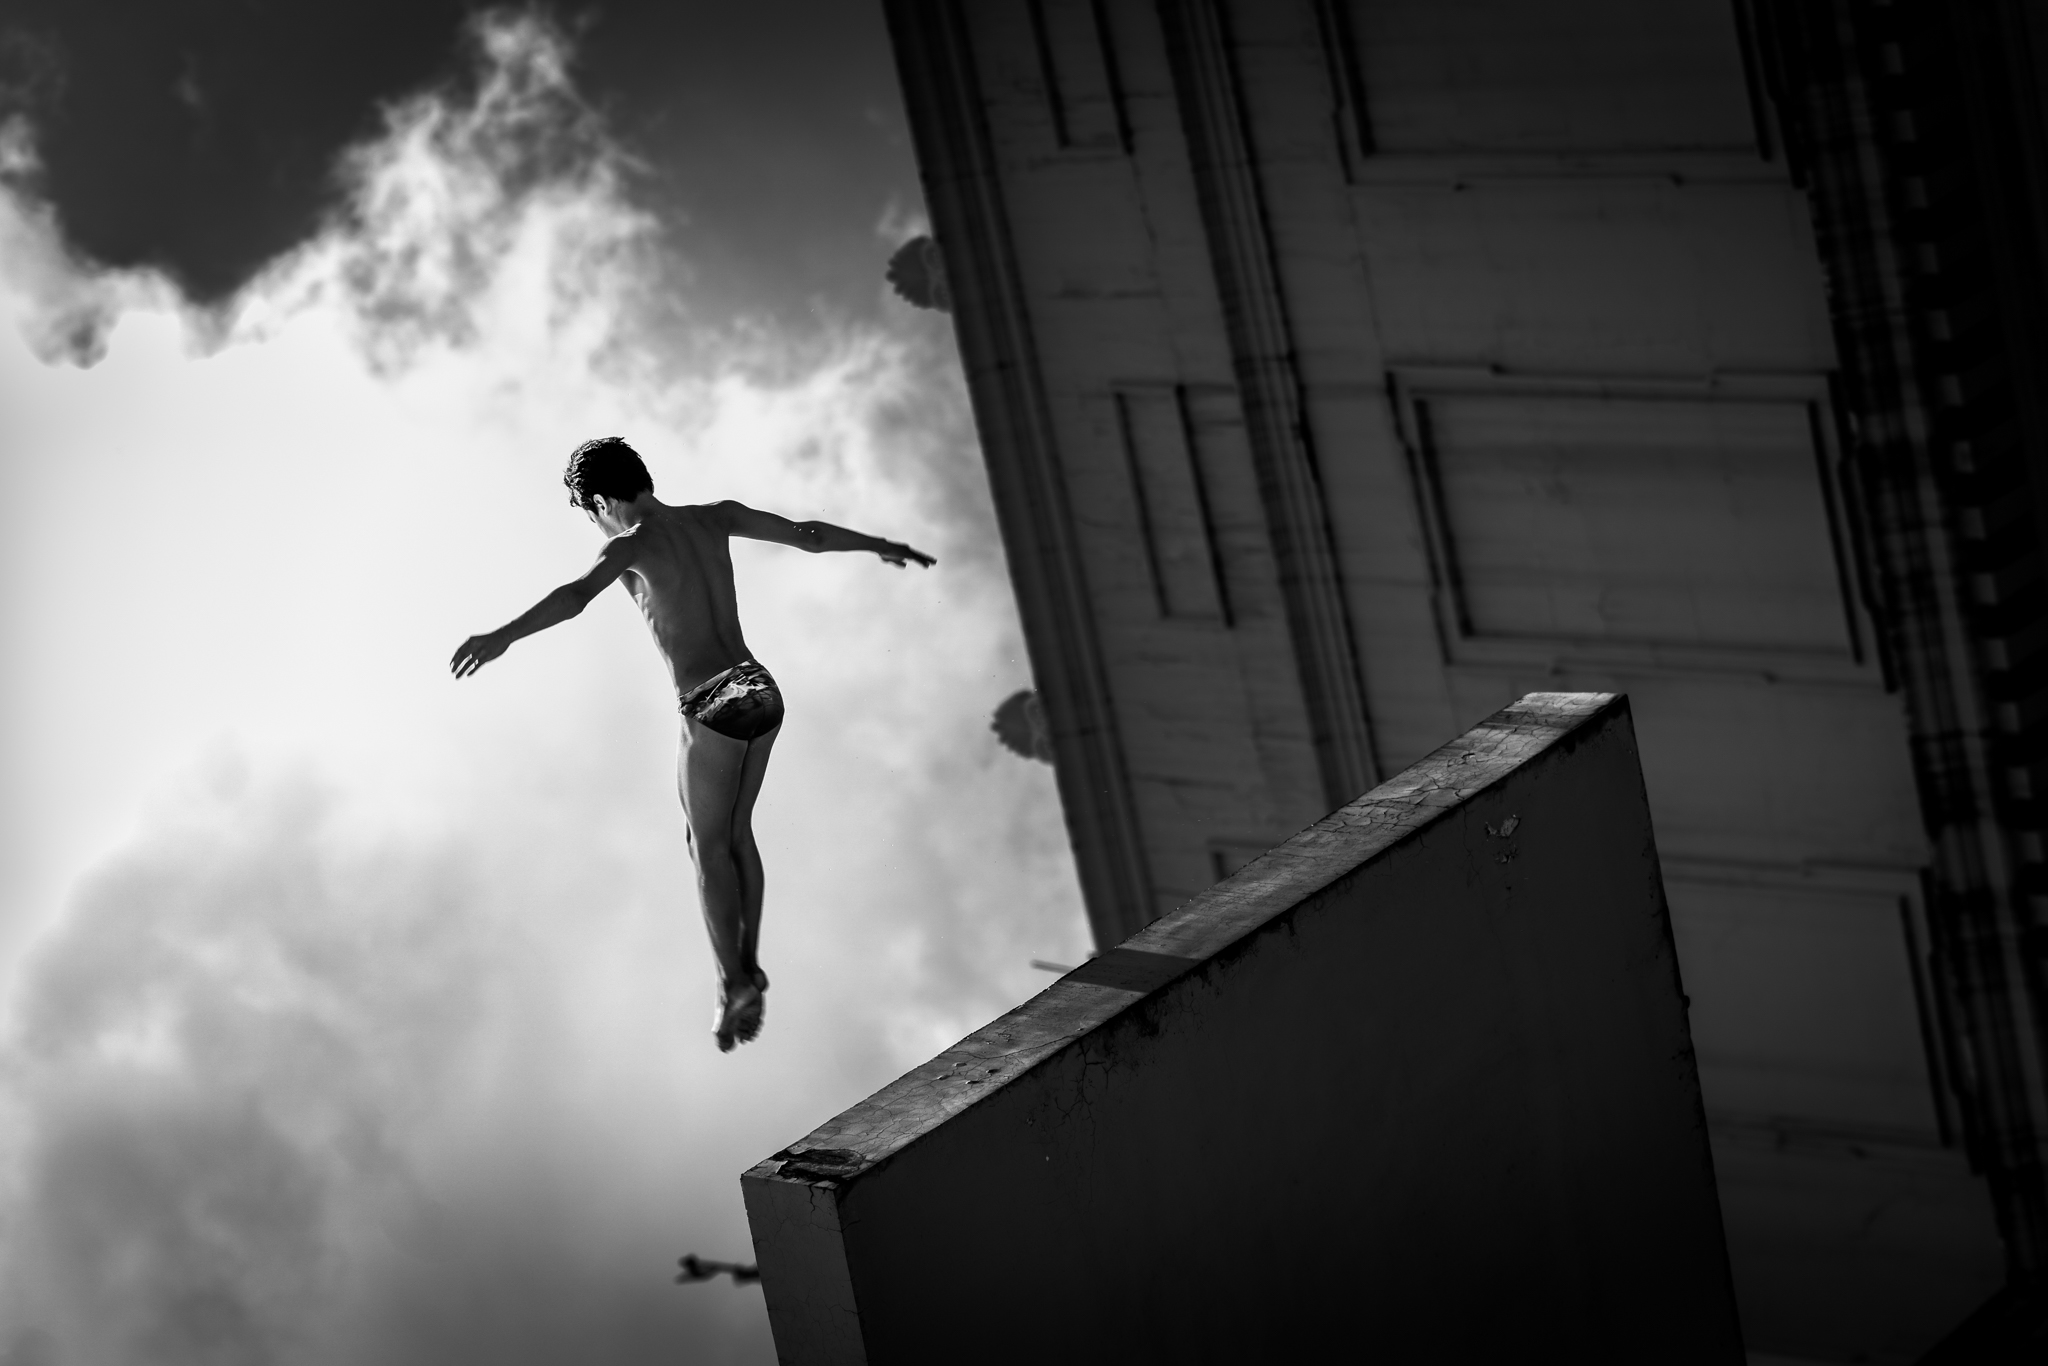 Participant performs at the Red Bull Cliff Diving Workshop in Manila, Philippines on April 4, 2019